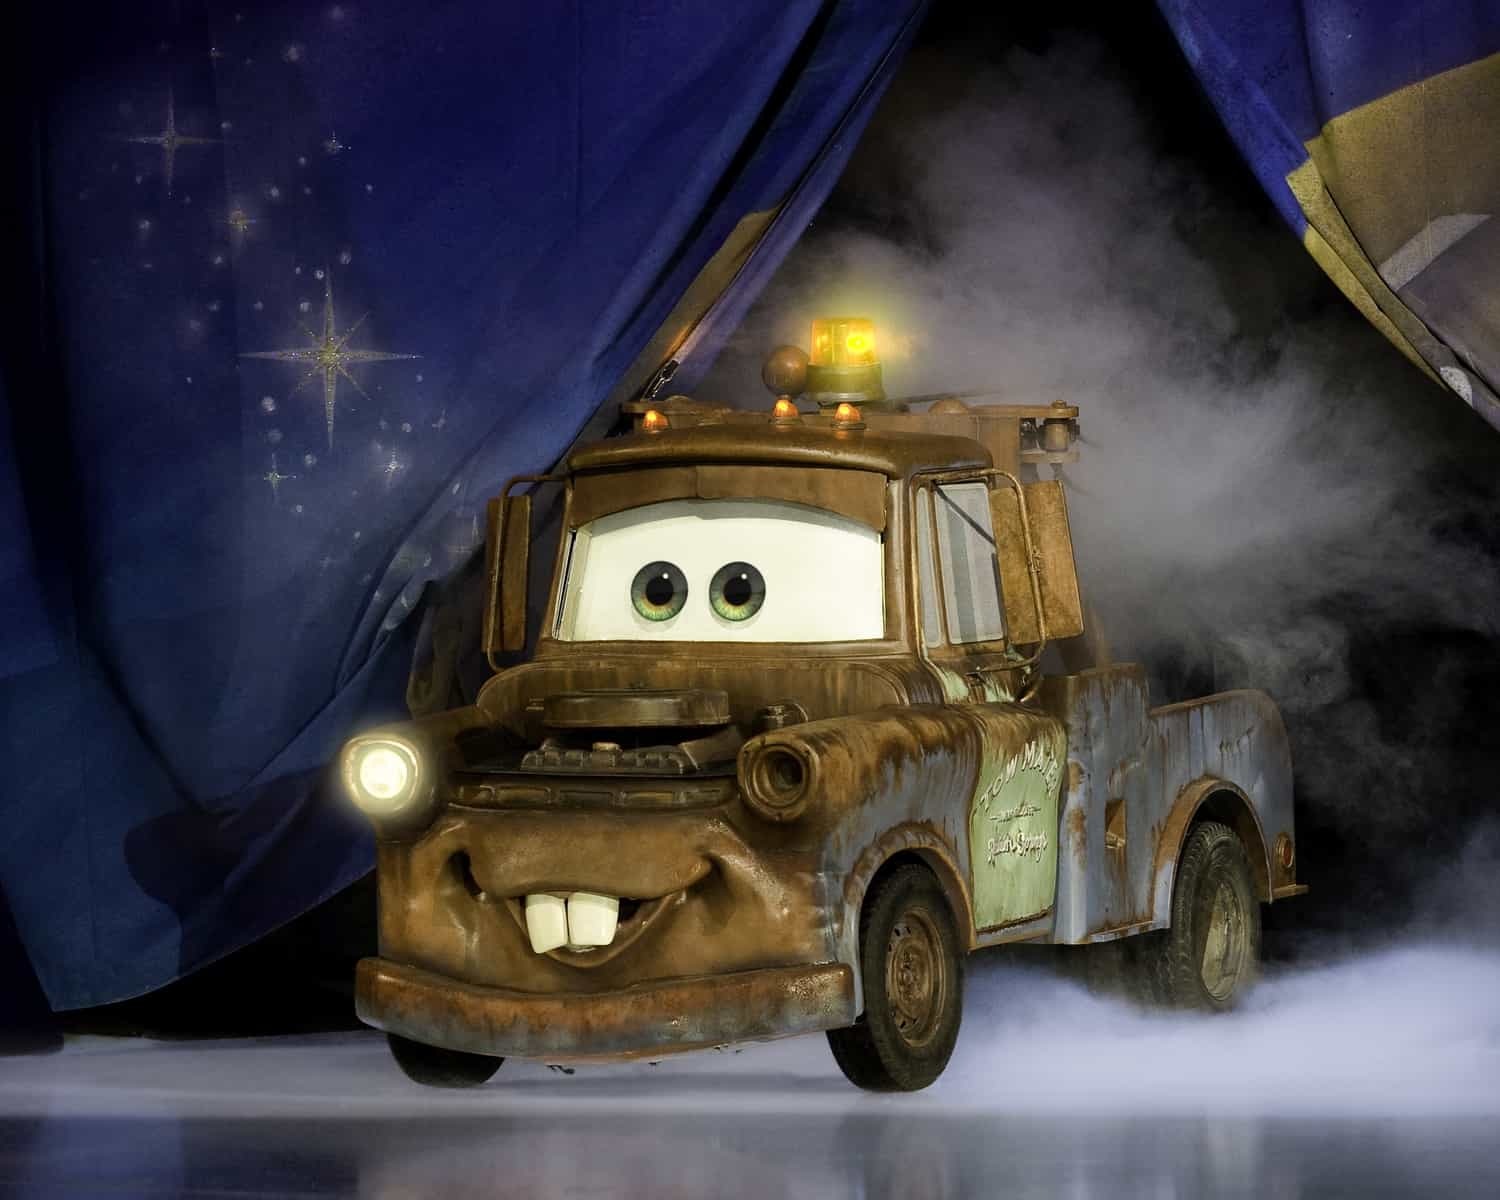 Car from Cars on ice as part of Disney on Ice Worlds of Enchantment